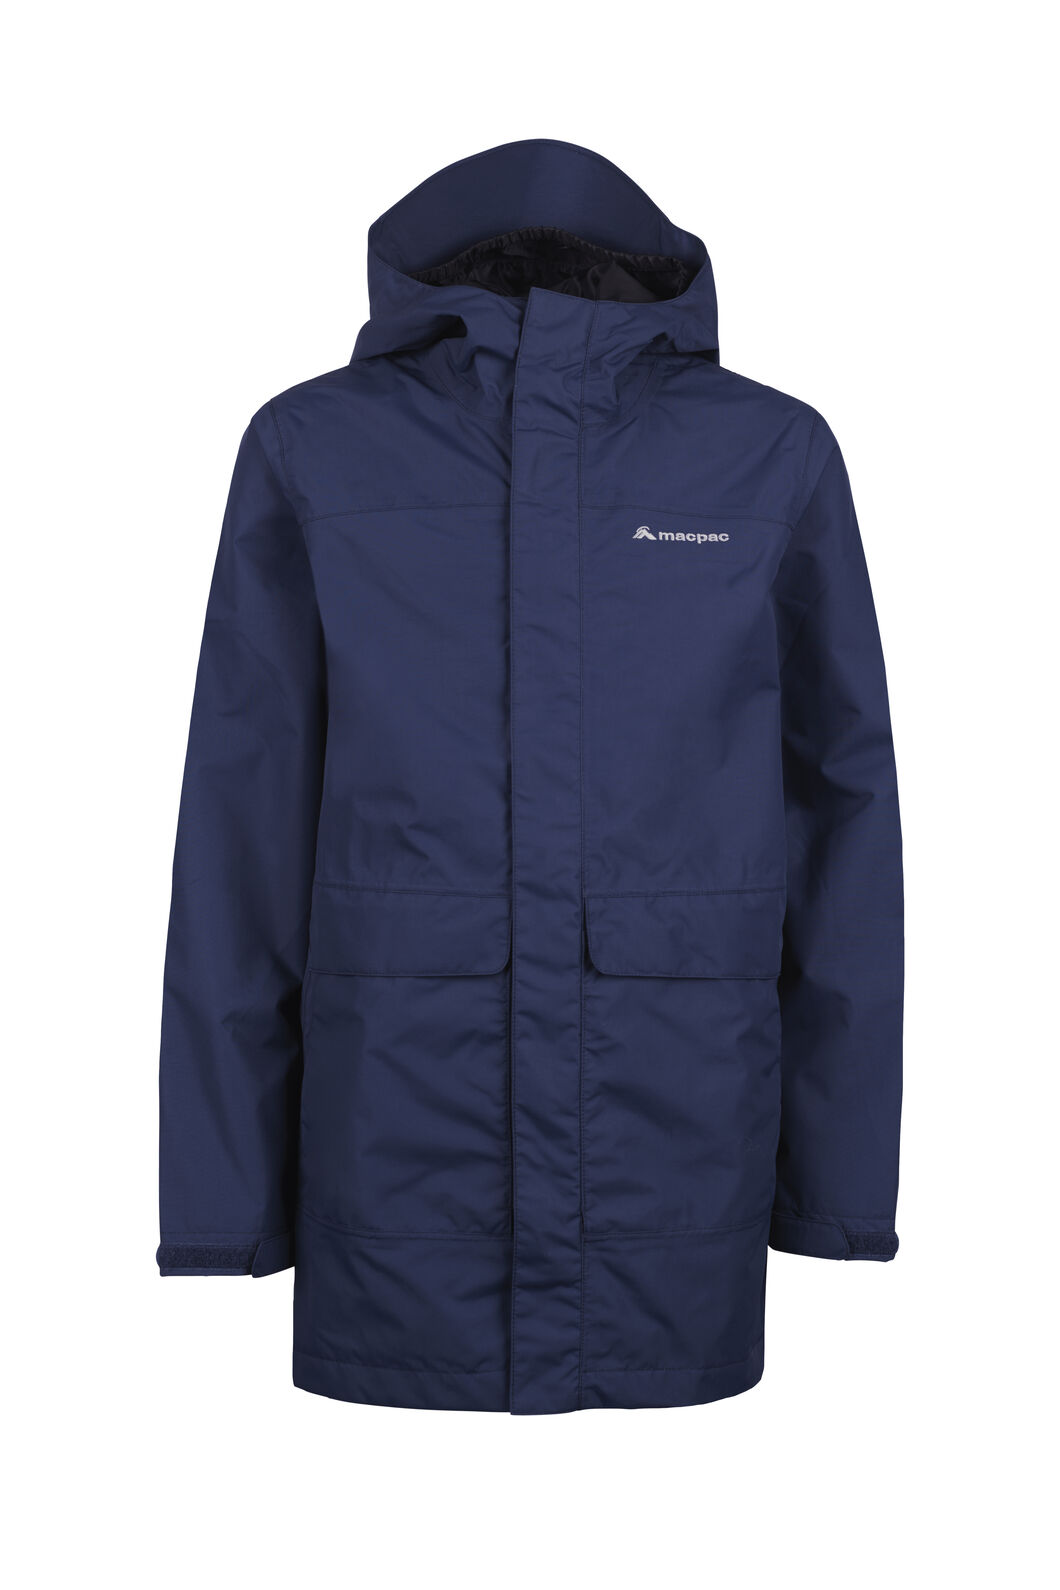 Macpac Lagoon Long Rain Jacket - Kids', Medieval Blue, hi-res